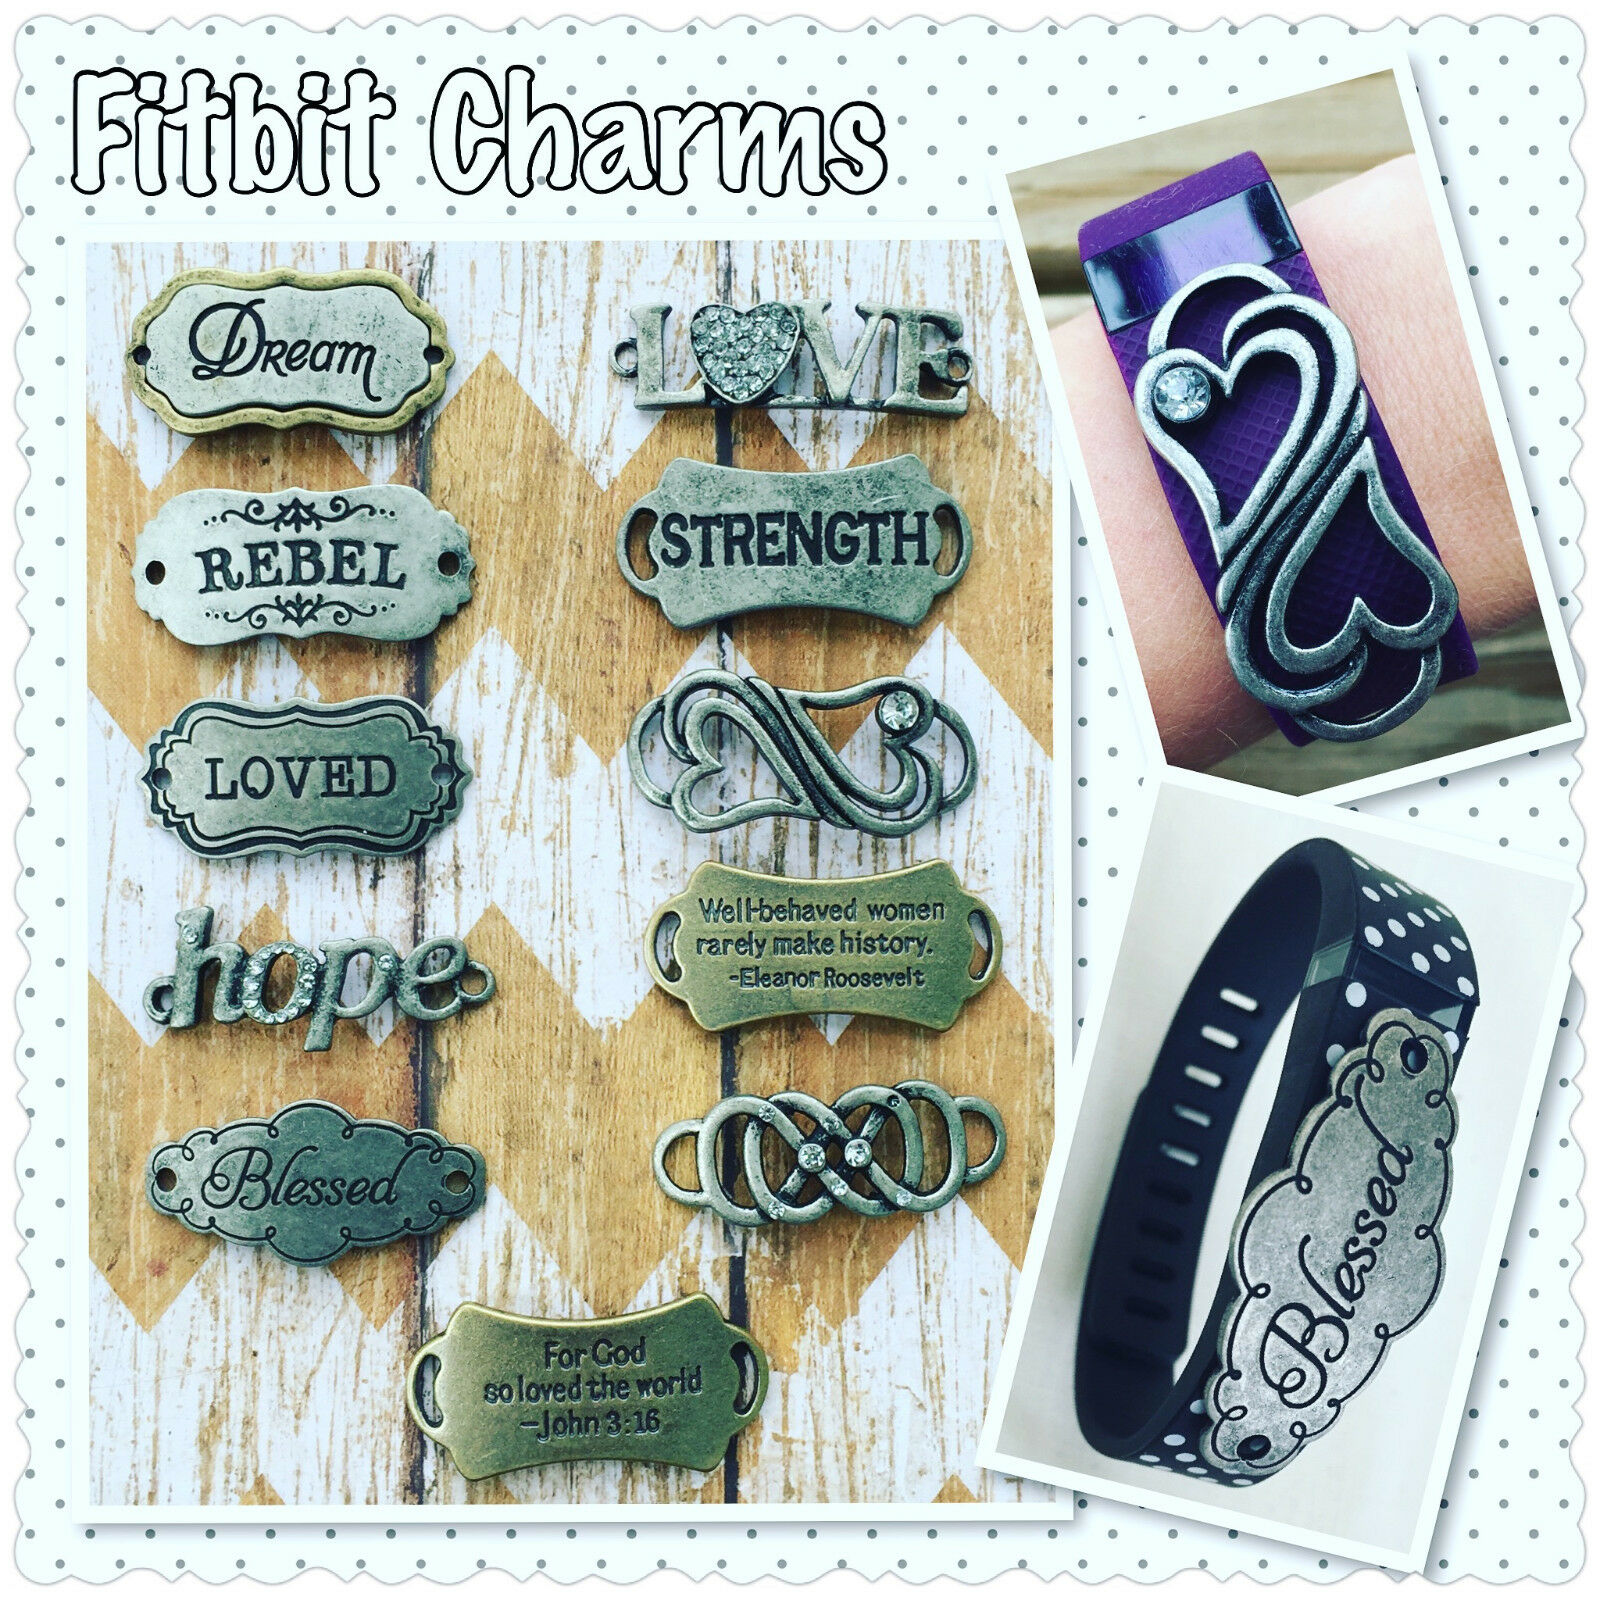 $14.99 - Fitness Tracker Charm Jewelry Accessory Bling Fitbit Charge 2 HR Blaze Surge